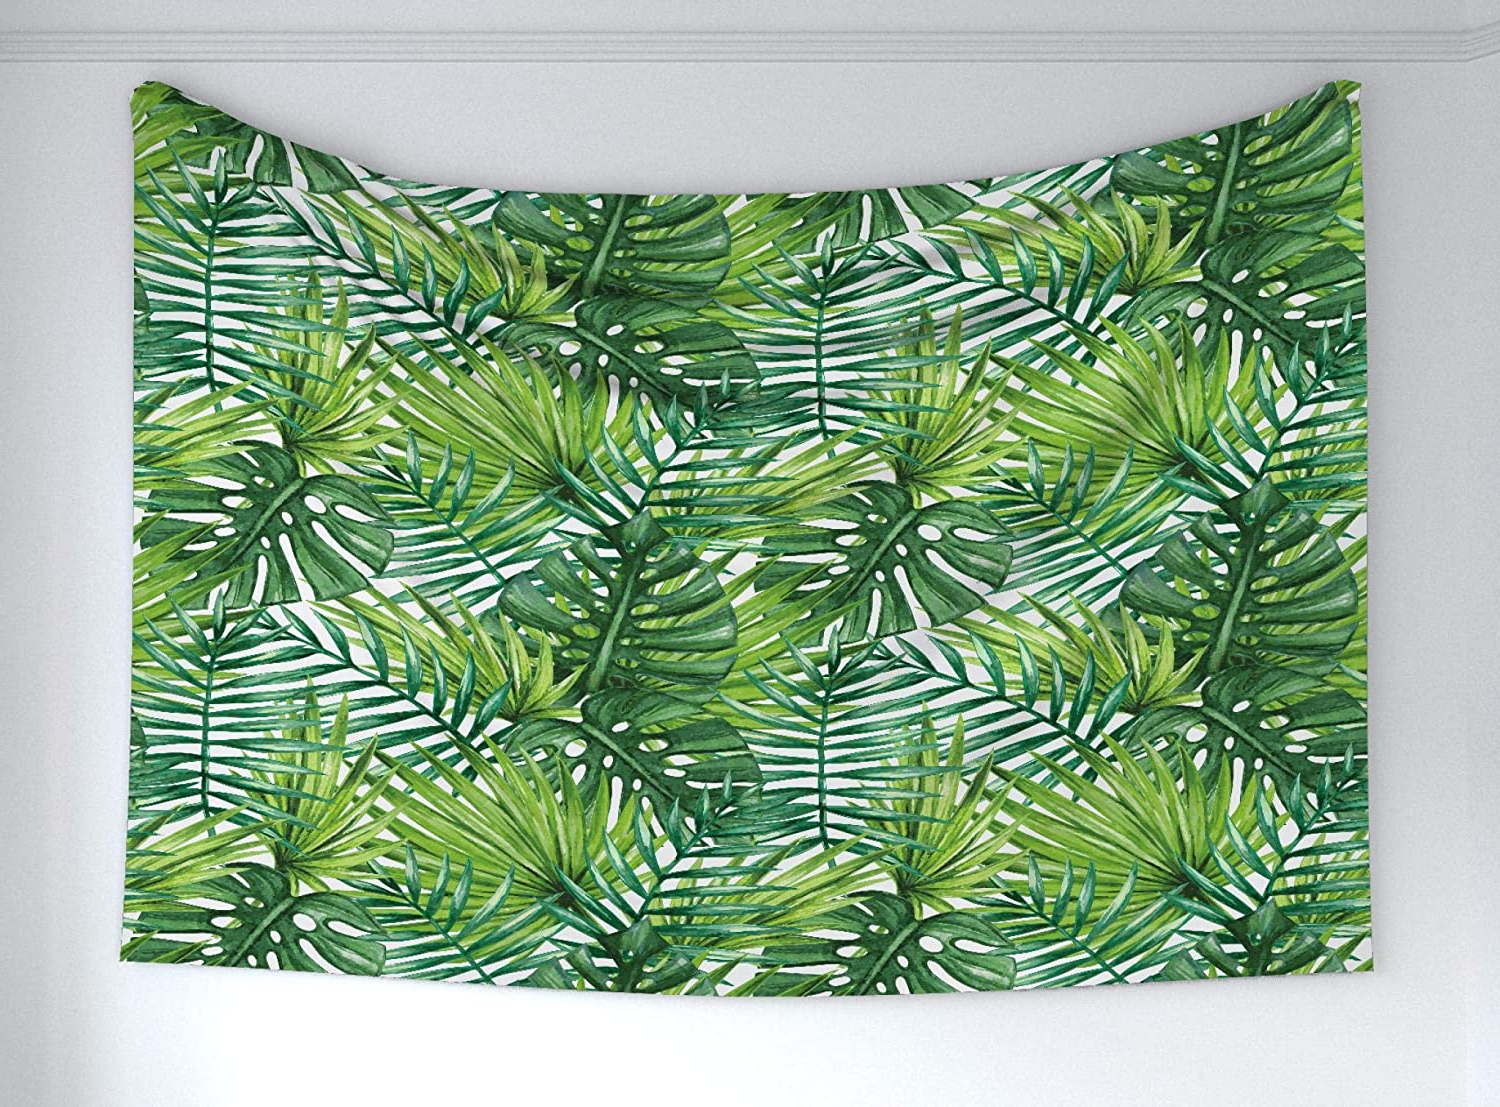 Blended Fabric Leaf Wall Hangings Inside Most Recent Ambesonne Leaf Tapestry, Tropical Exotic Banana Forest Palm Tree Leaves Watercolor Design Image, Fabric Wall Hanging Decor For Bedroom Living Room (View 10 of 20)